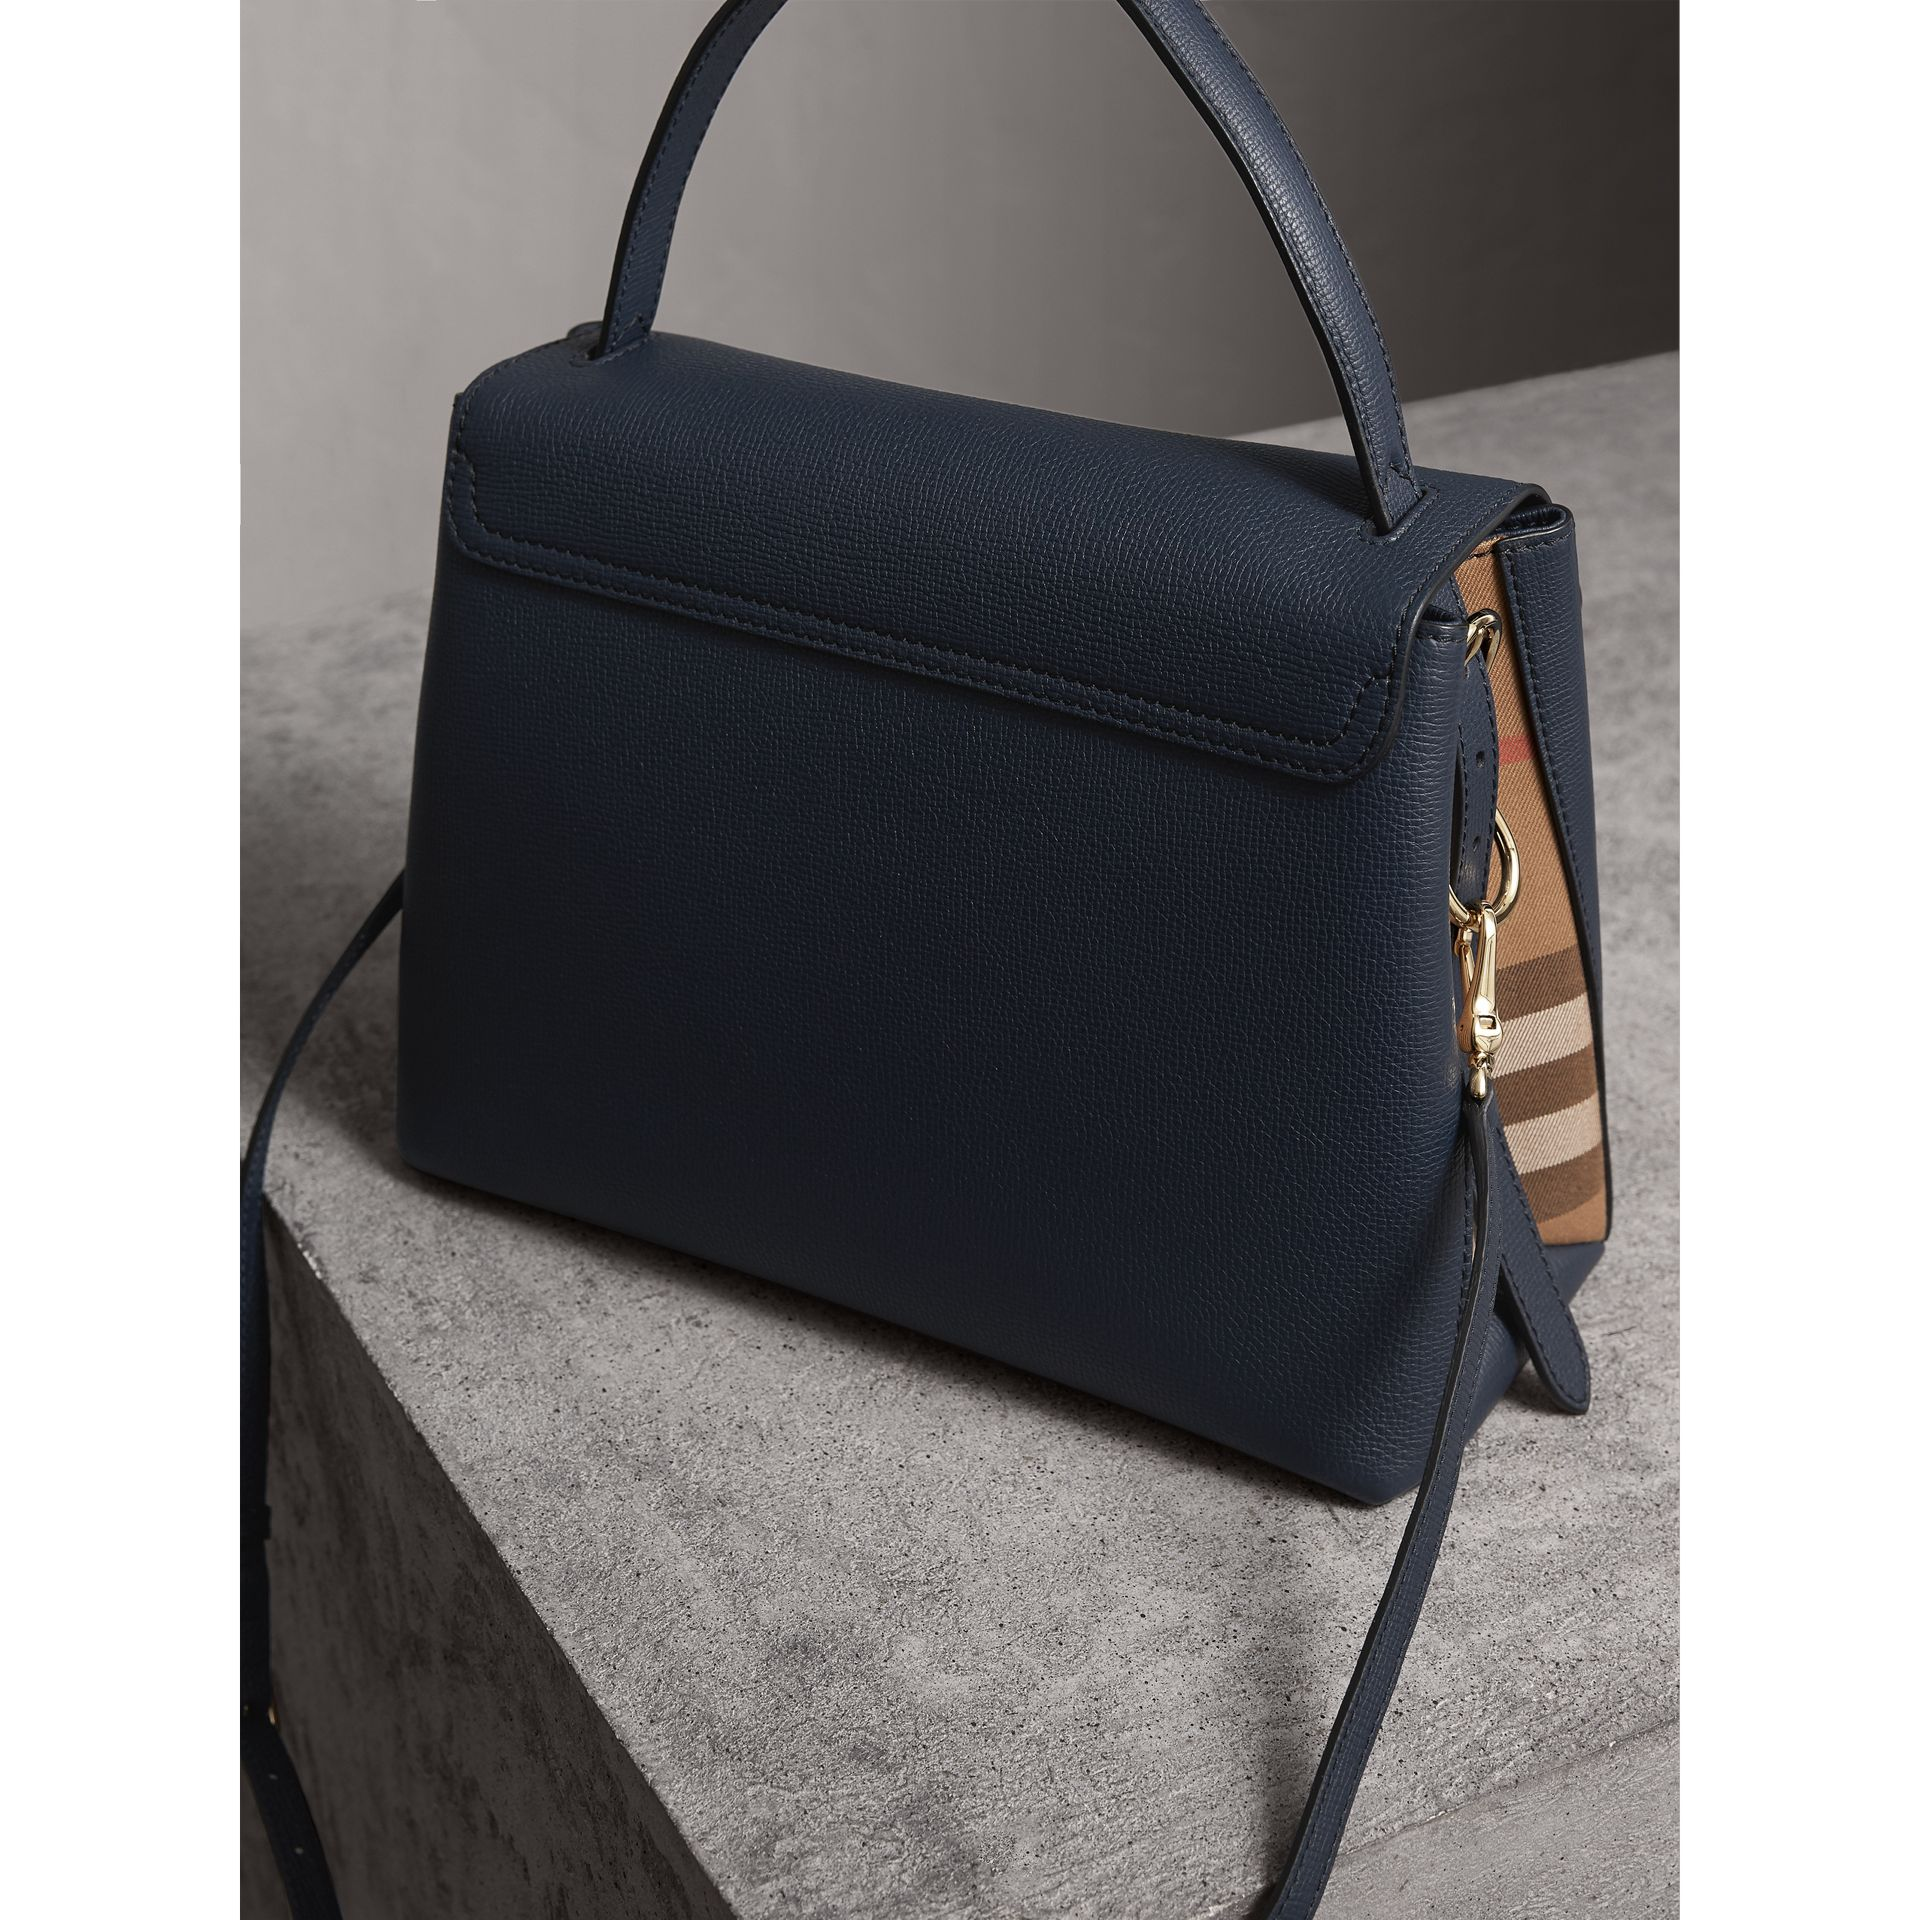 Medium Grainy Leather and House Check Tote Bag in Ink Blue - Women | Burberry Australia - gallery image 4